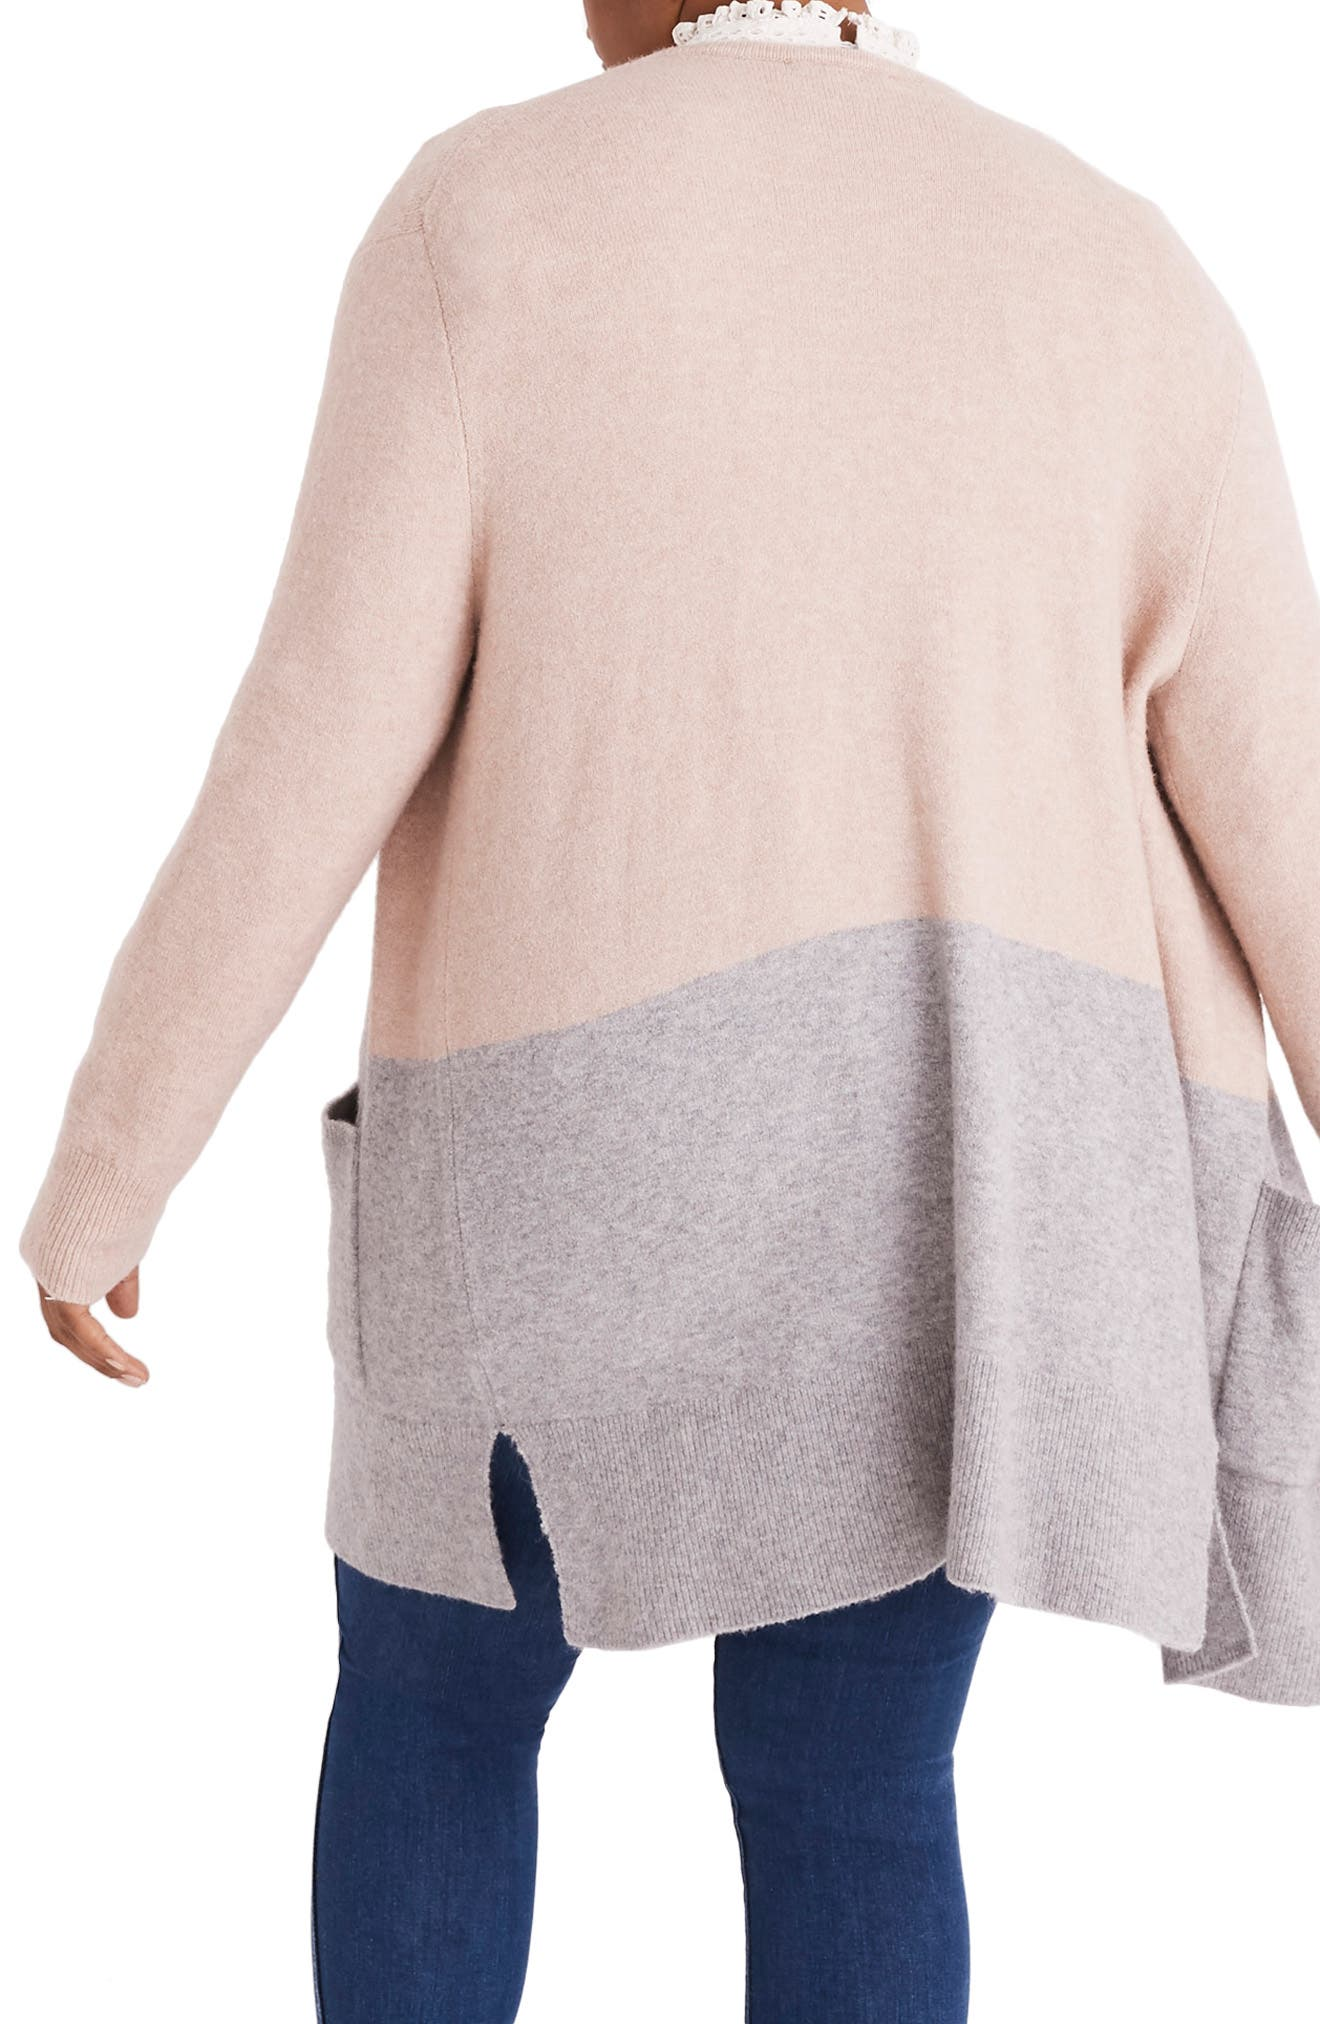 MADEWELL,                             Kent Colorblock Cardigan Sweater,                             Alternate thumbnail 6, color,                             250